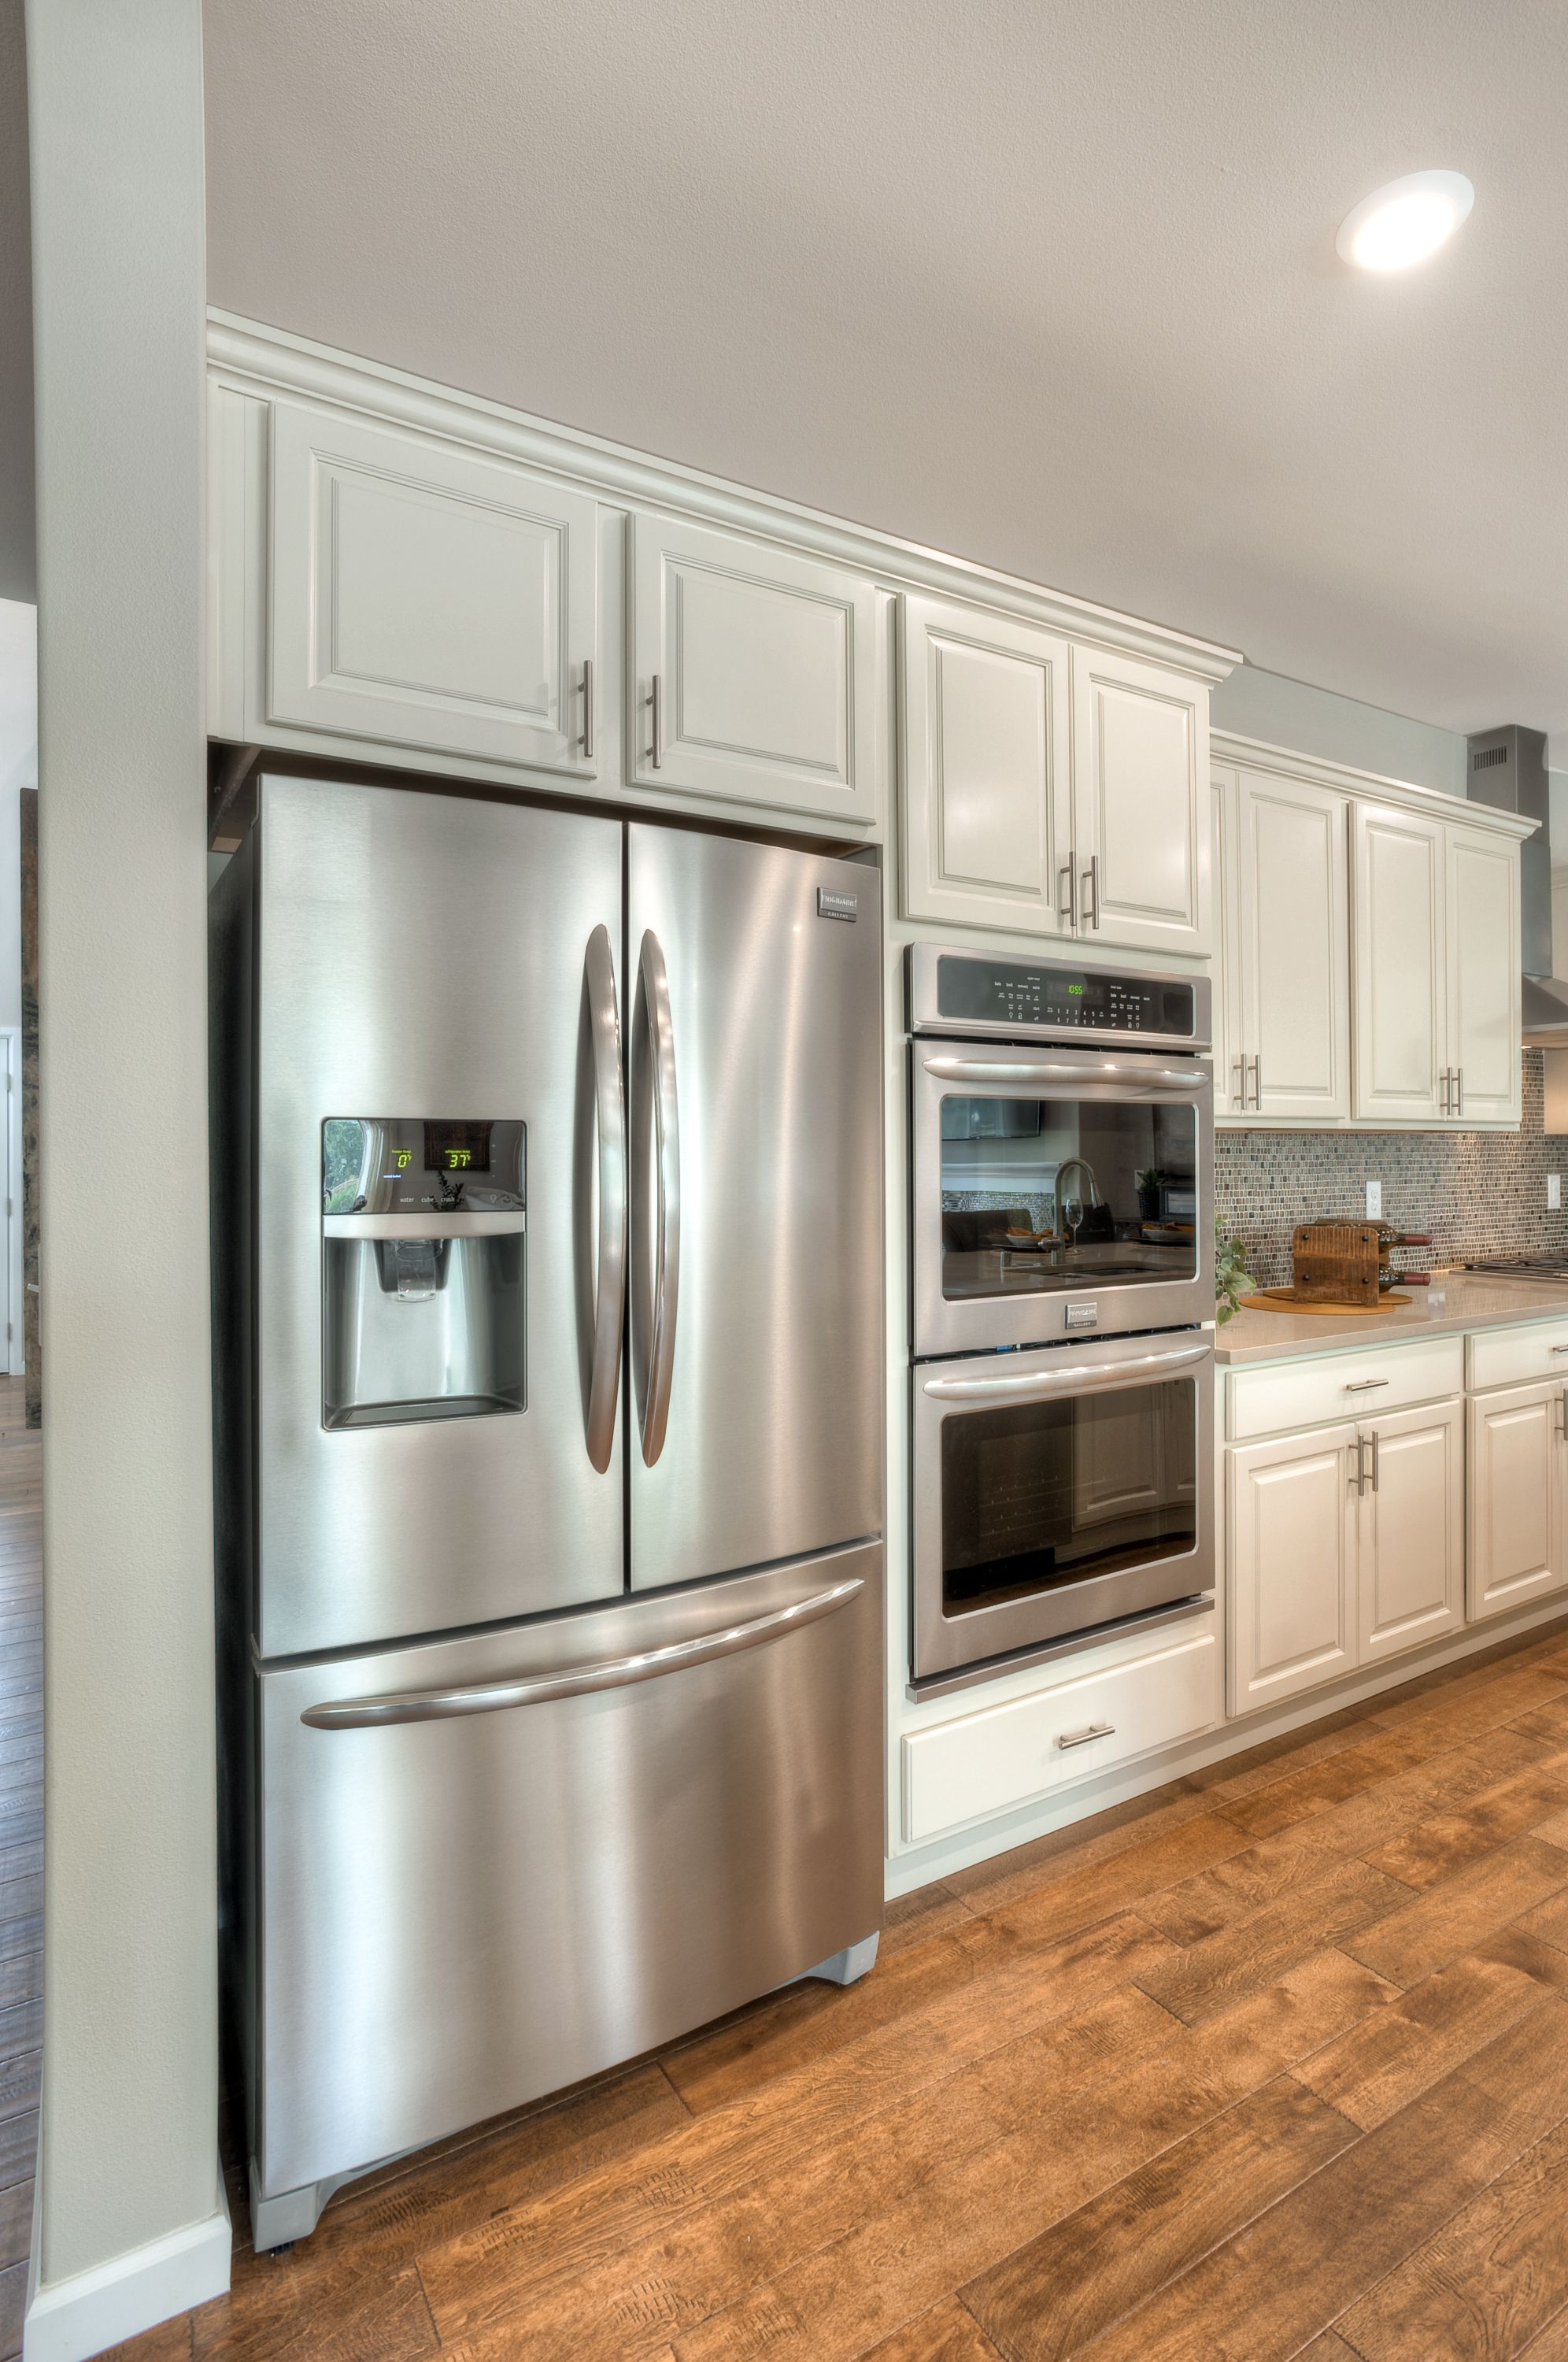 Everything S Included Meaning This Stainless Steel Appliances Are